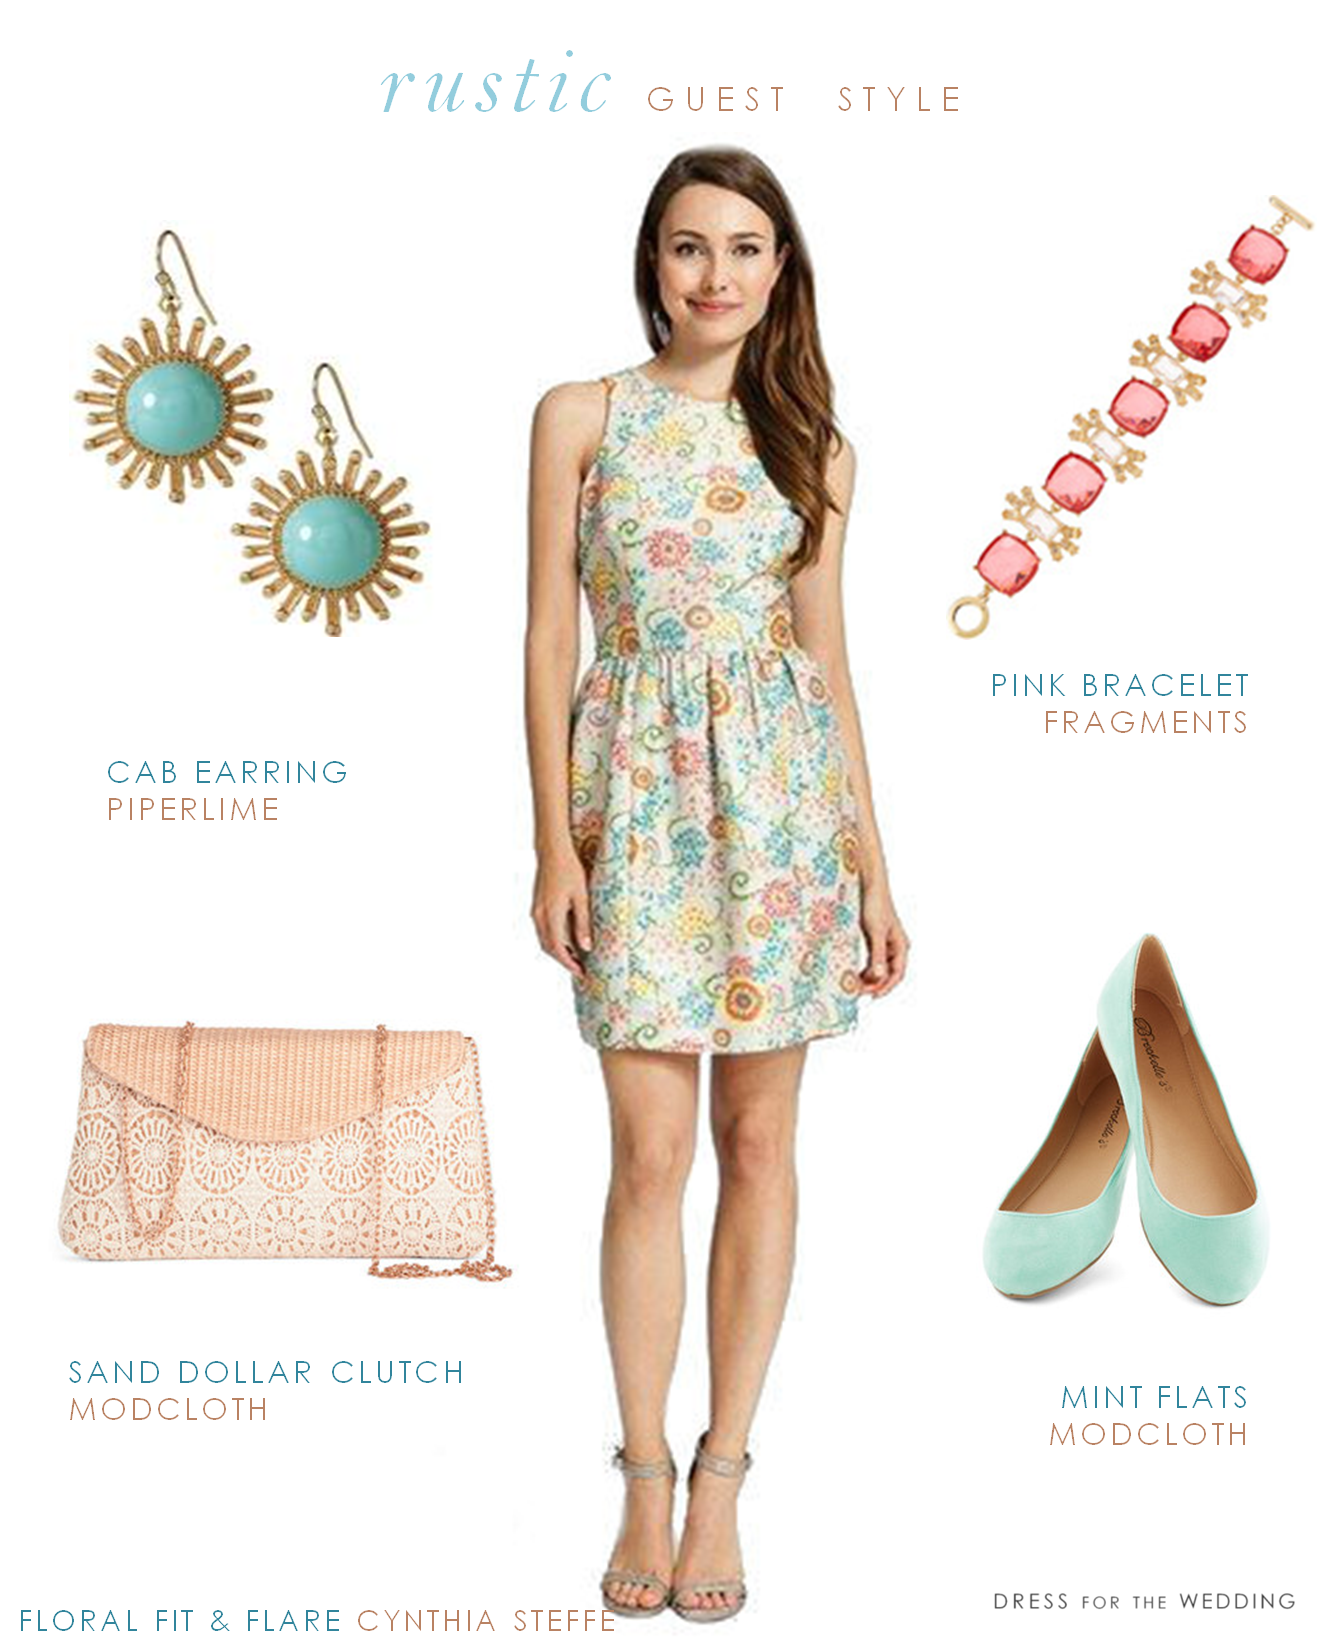 What Should a Guest Wear to a Rustic Wedding? Dress